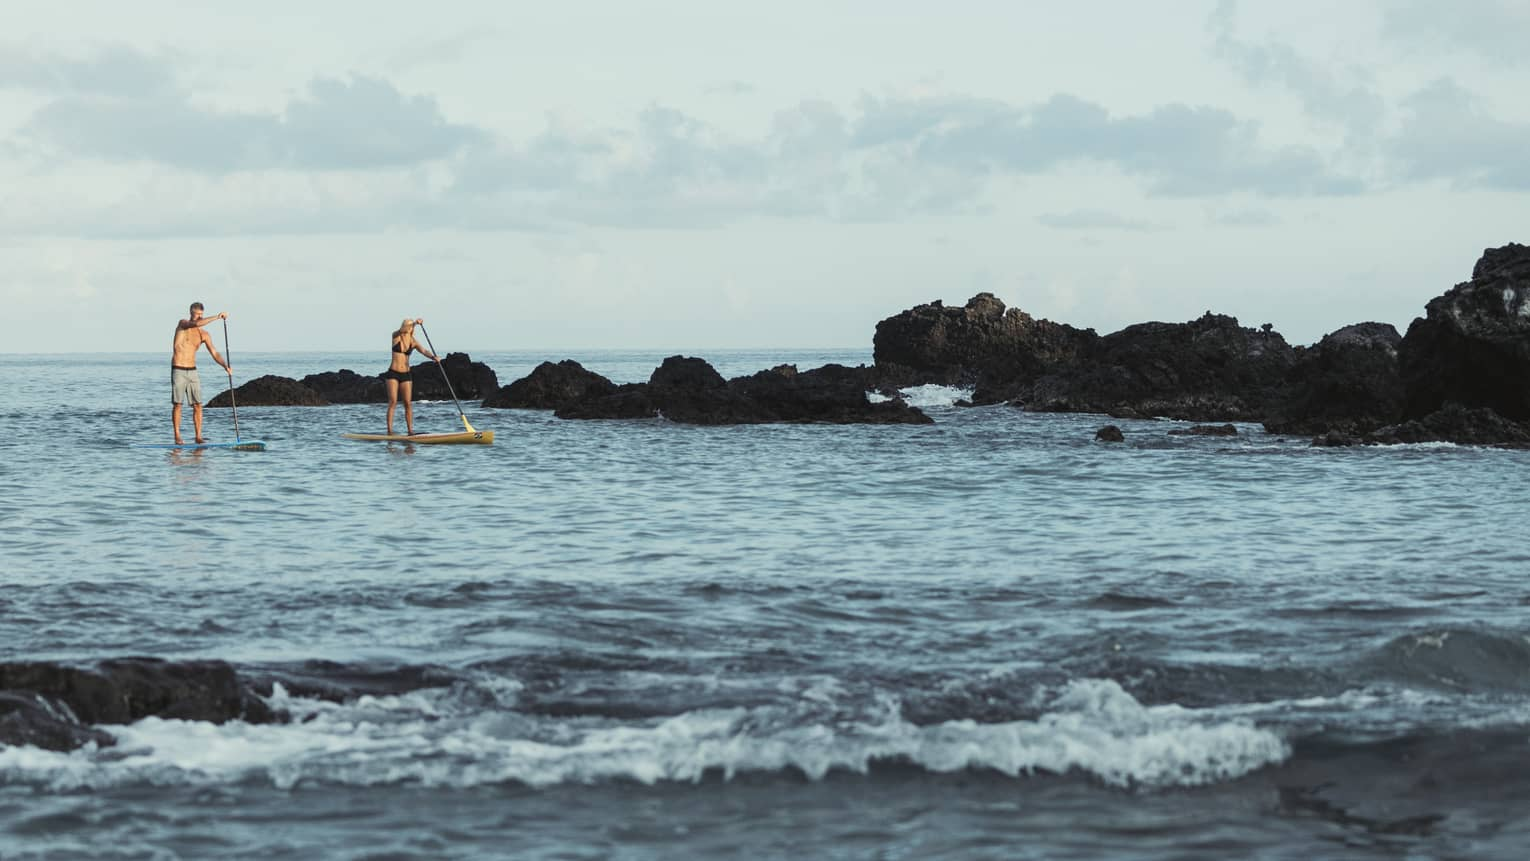 Two people balance on stand-up paddleboards in lagoon by black rocks